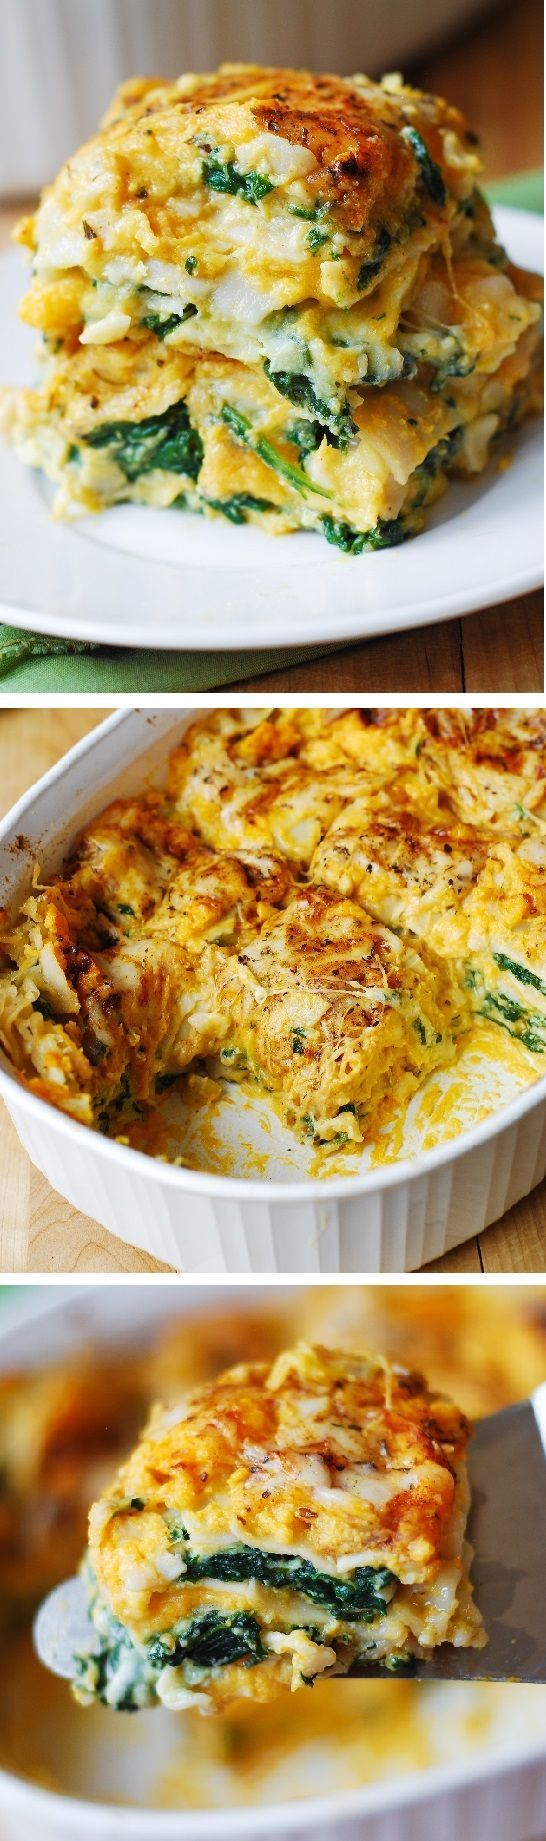 Butternut Squash and Spinach Three Cheese Lasagna combines amazing flavors to create the ultimate Fall & Winter comfort food. I made it with gluten free brown rice lasagna noodles - works really well!